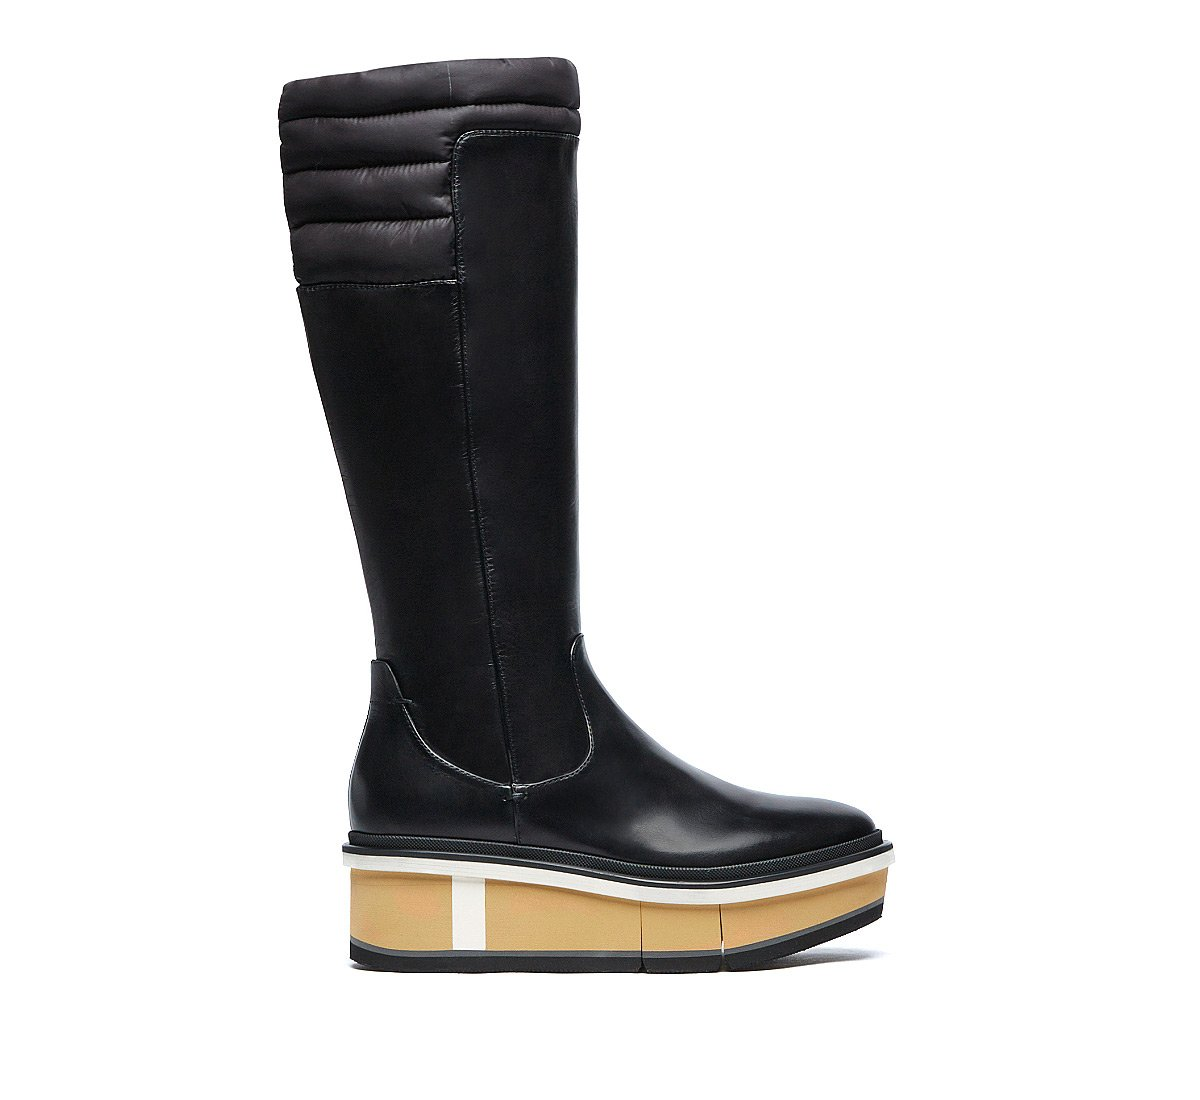 Hybrid boot in soft nappa